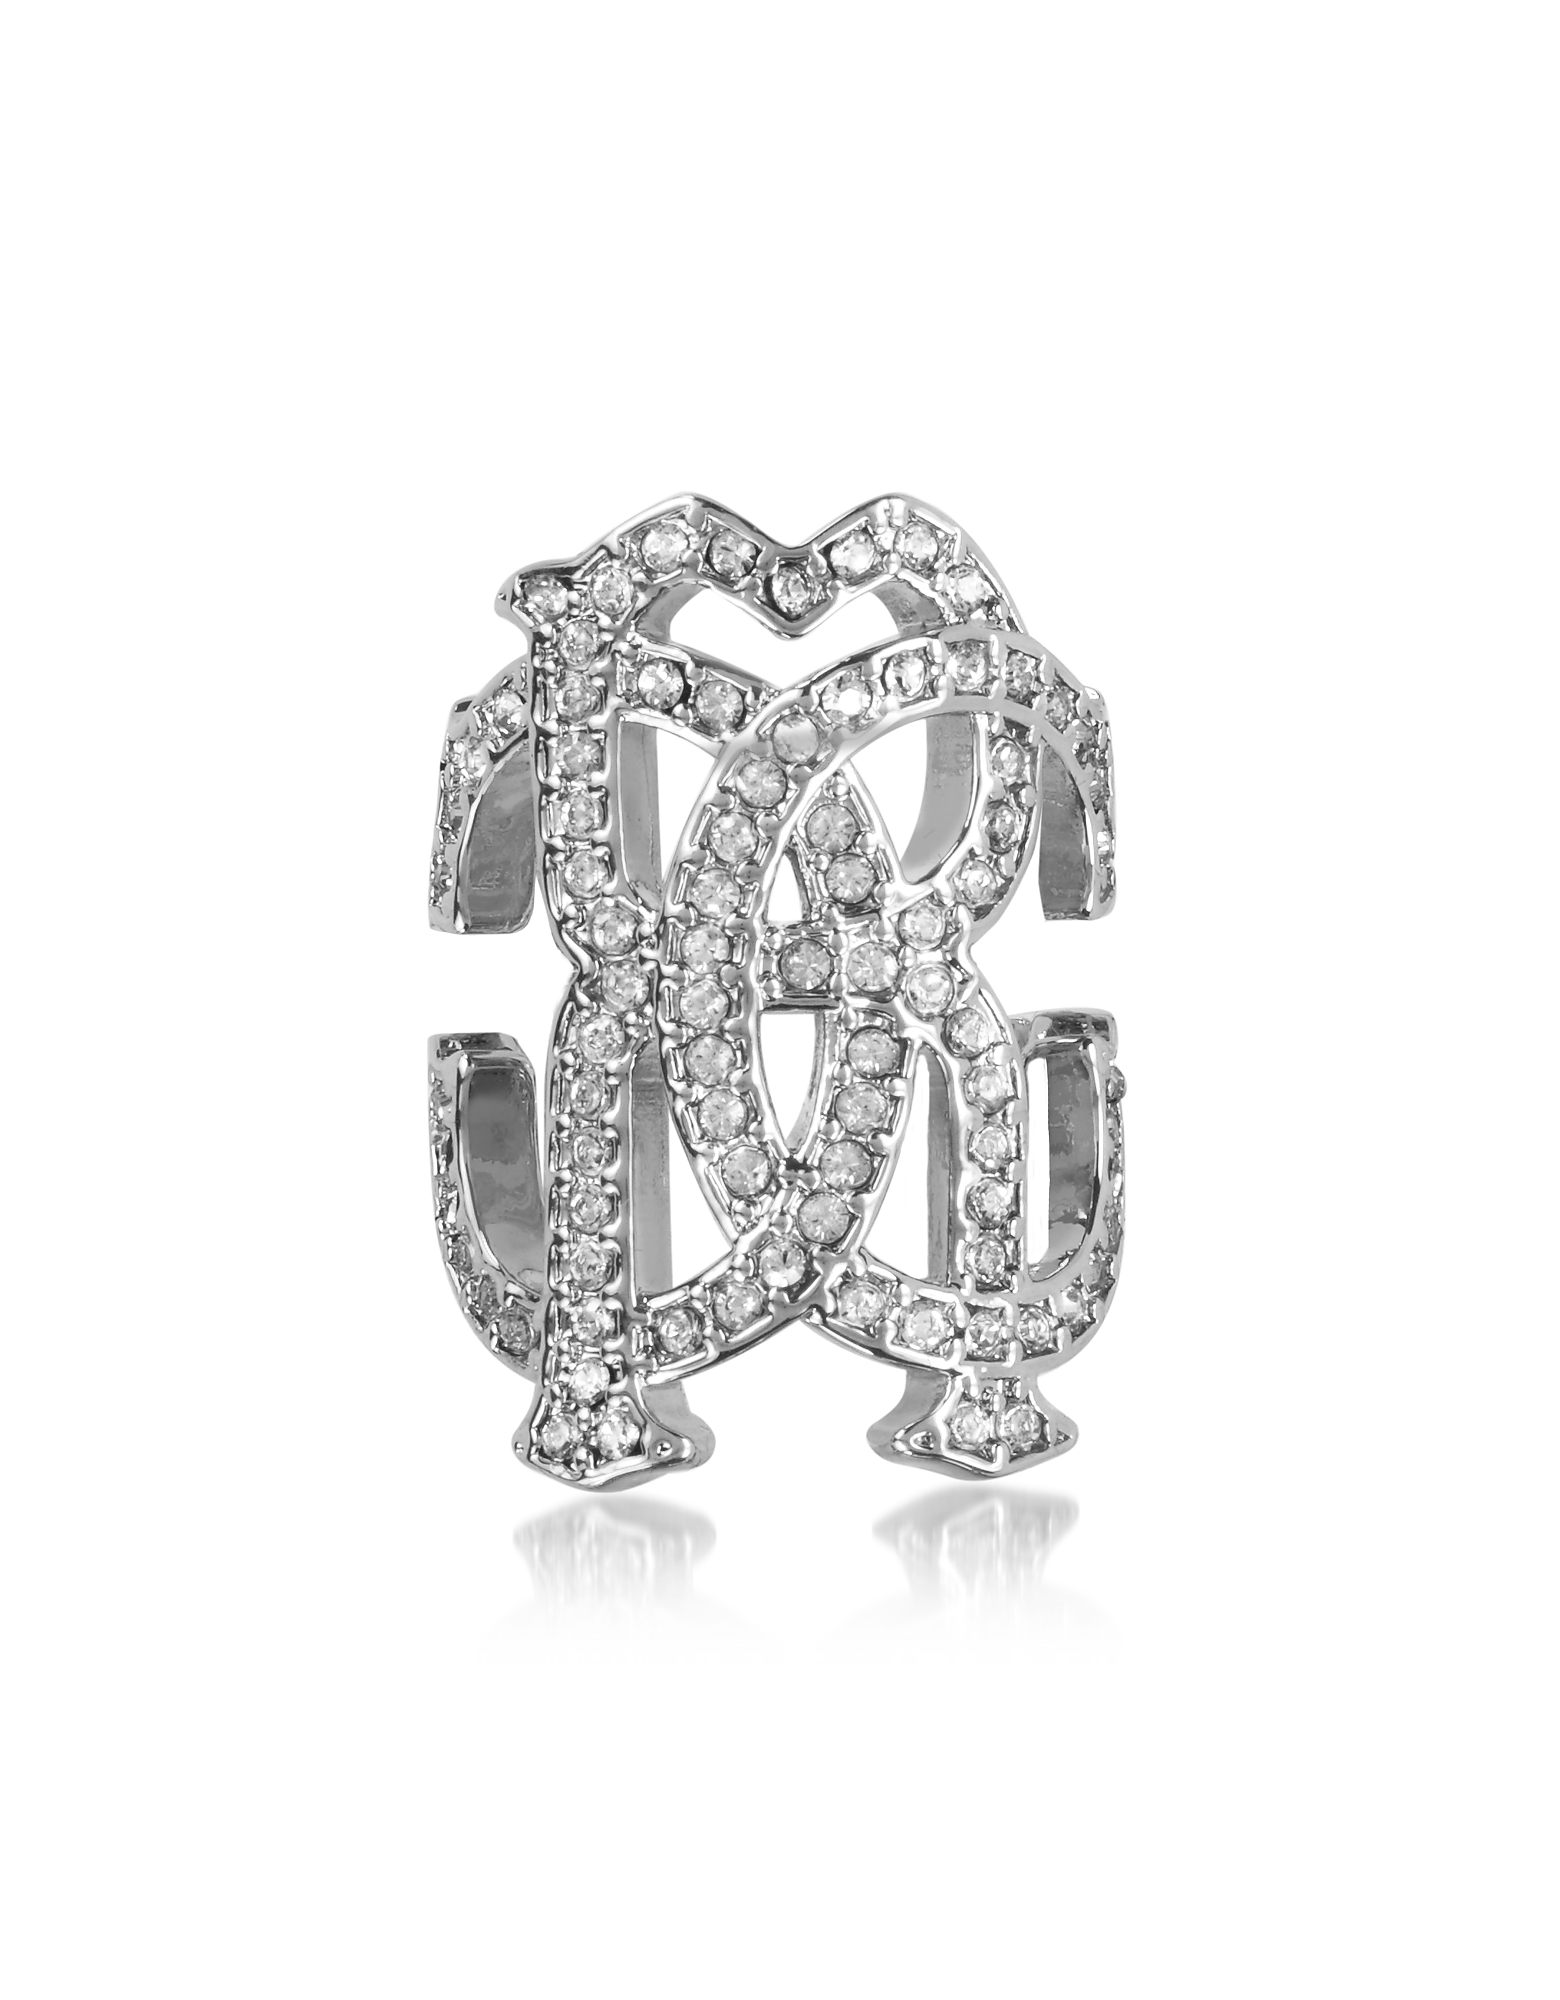 Roberto Cavalli Rings, RC Icon Silvertone Ring w/Crystals